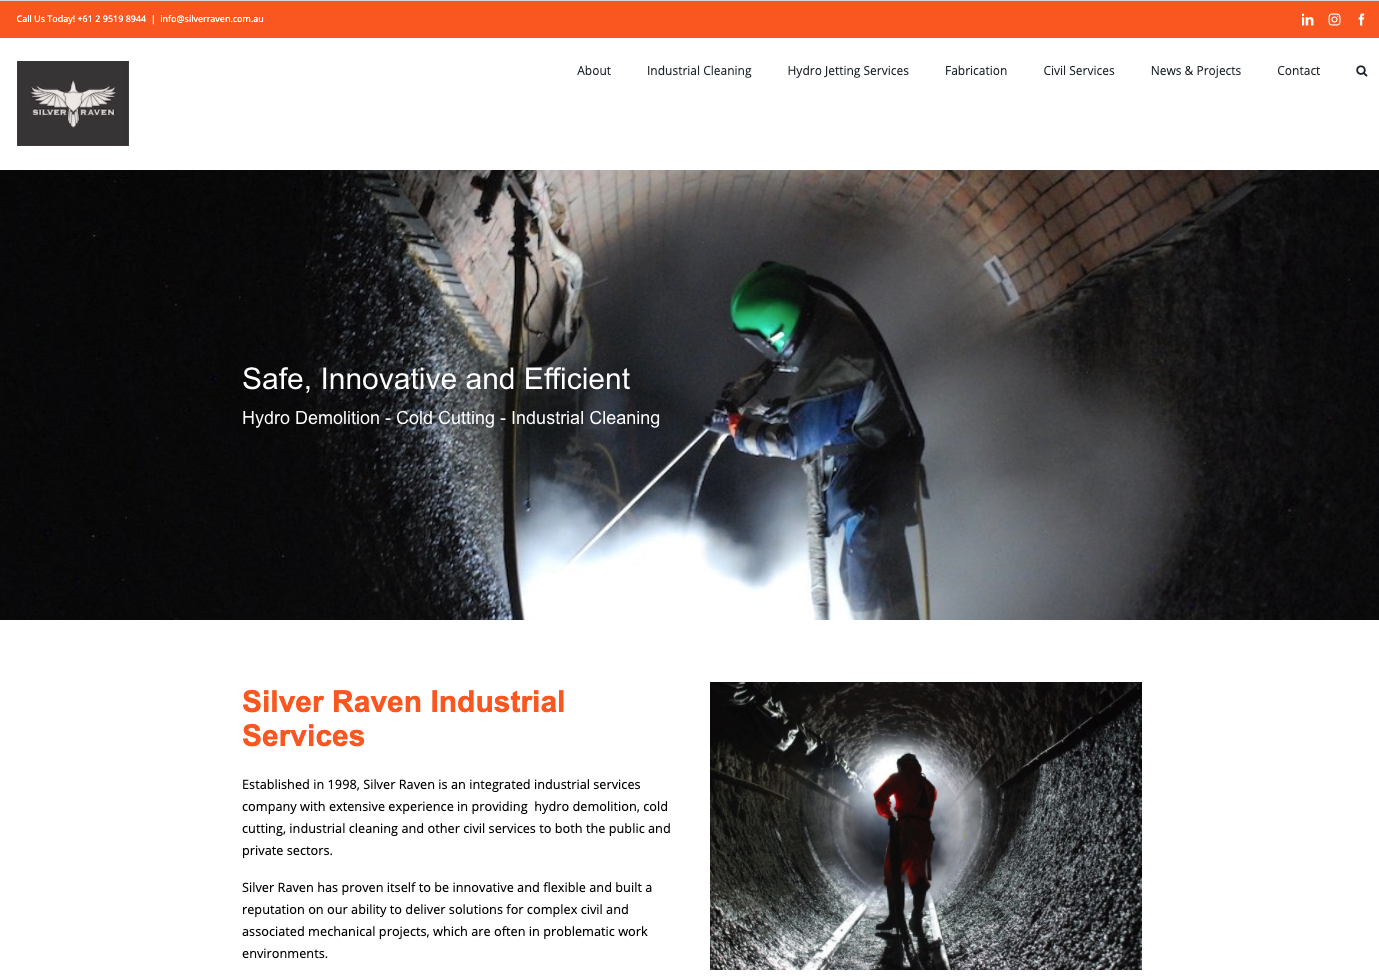 Silver Raven Industrial Services